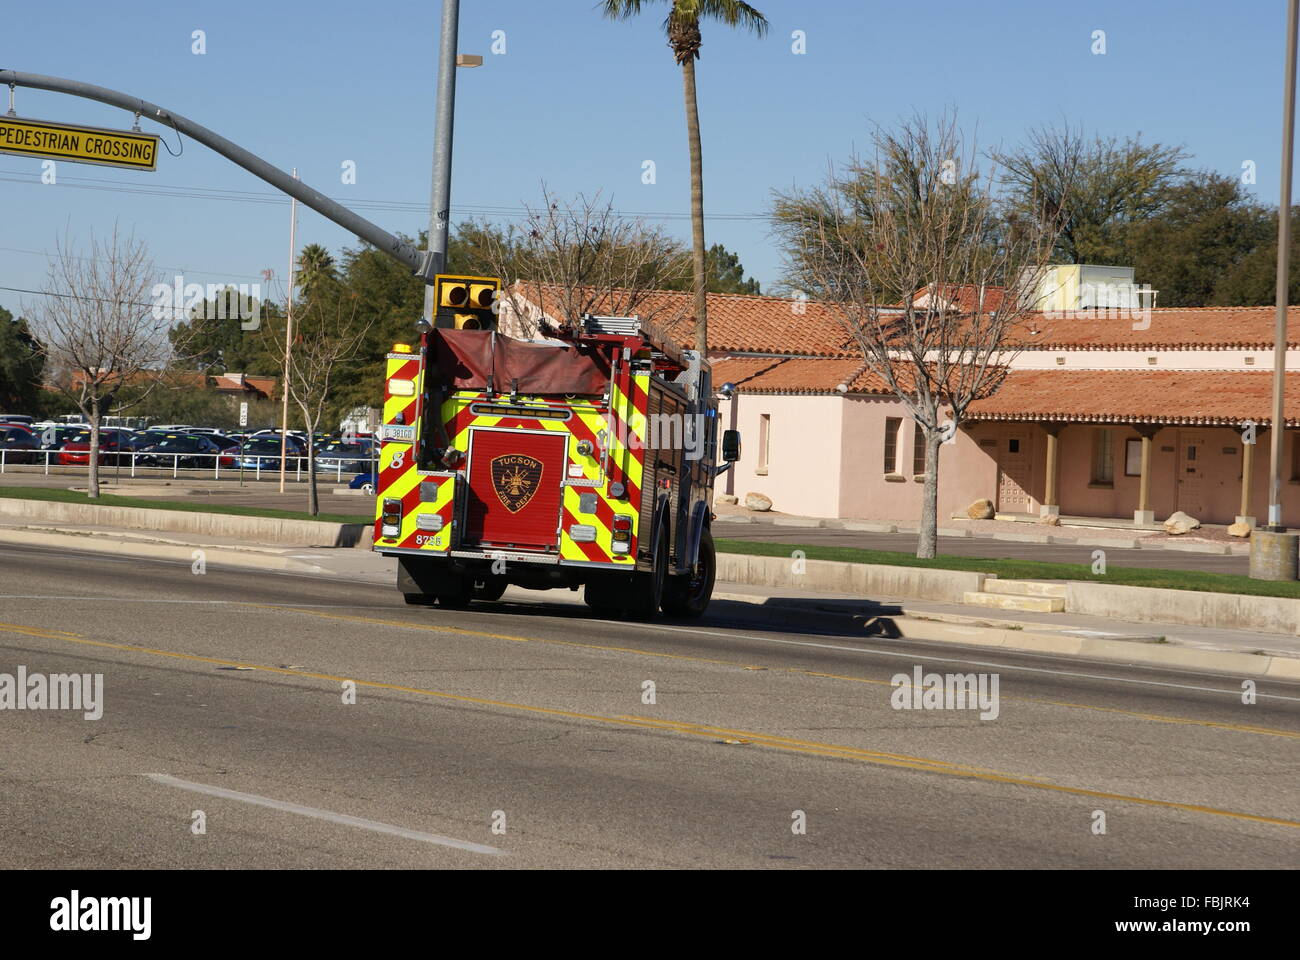 Tucson ariz usa17th jan 2016 fire truck at the scene of a stock tucson ariz usa17th jan 2016 fire truck at the scene of a rollover accident in front of flowing wells high school on prince road in tucson arizona usa freerunsca Choice Image